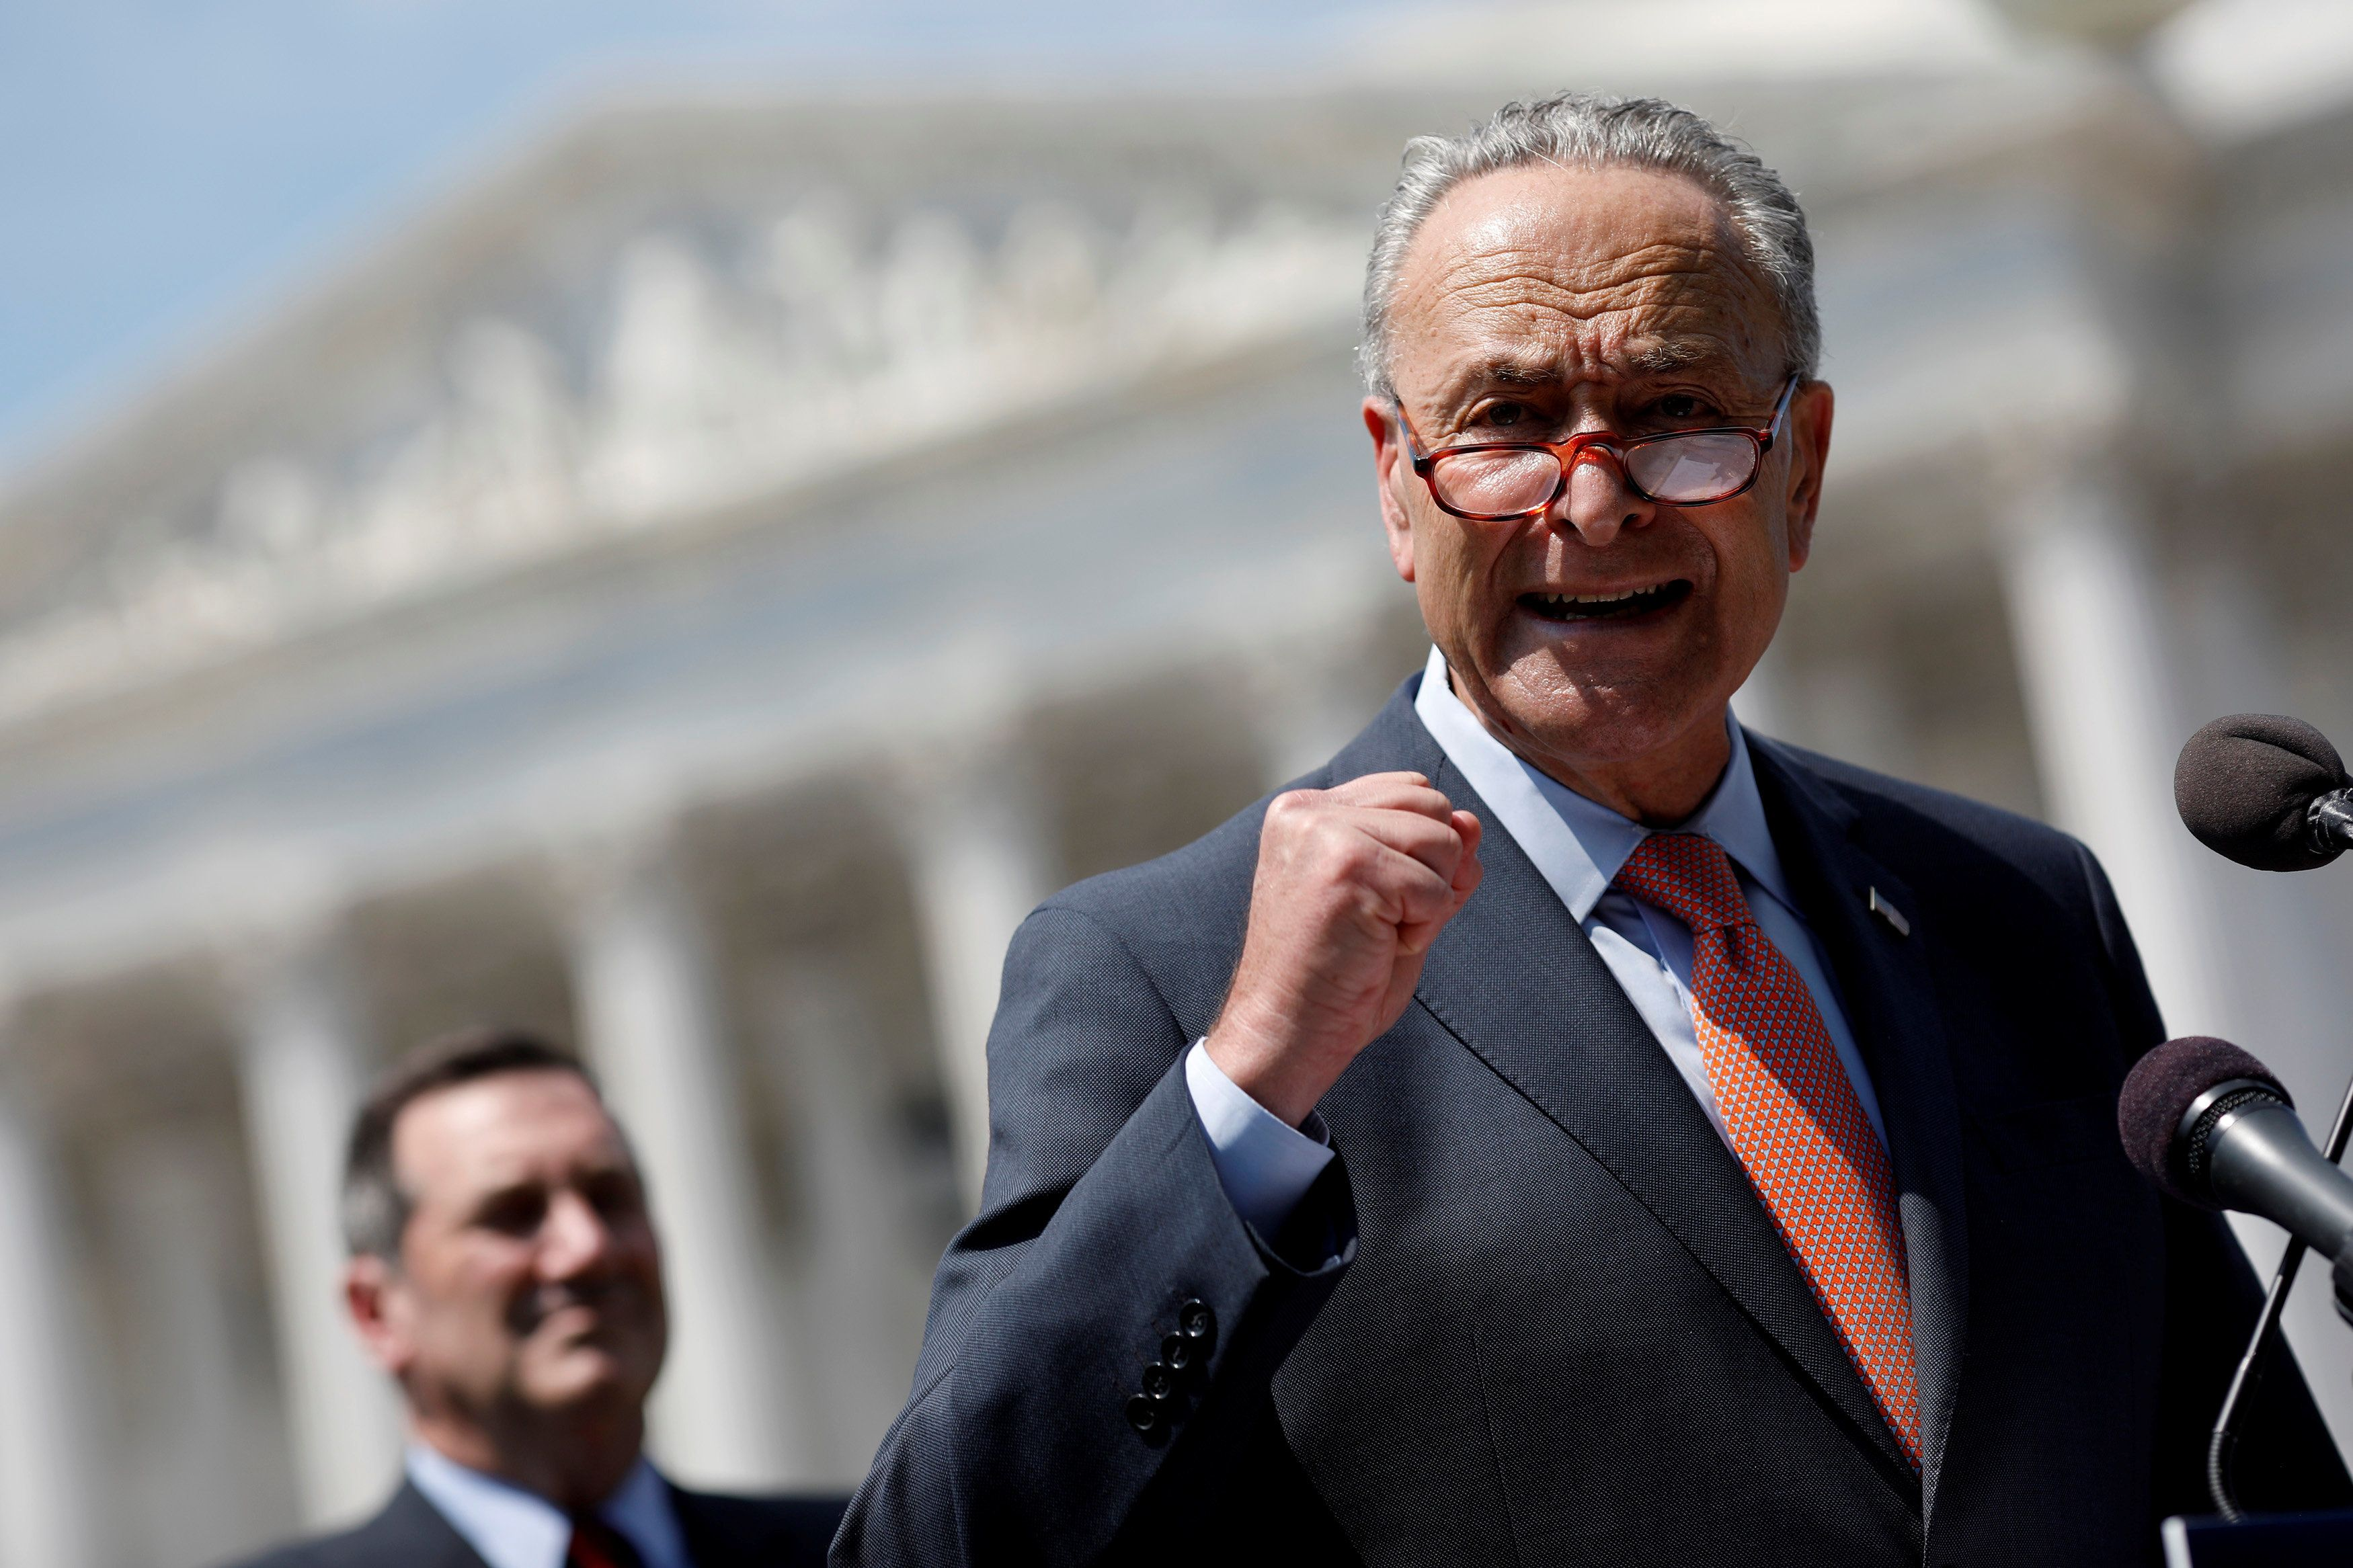 Senate Minority Leader Chuck Schumer speaks during a press conference for the Democrats' new economic agenda on Capitol Hill in Washington, U.S., August 2, 2017. REUTERS/Aaron P. Bernstein